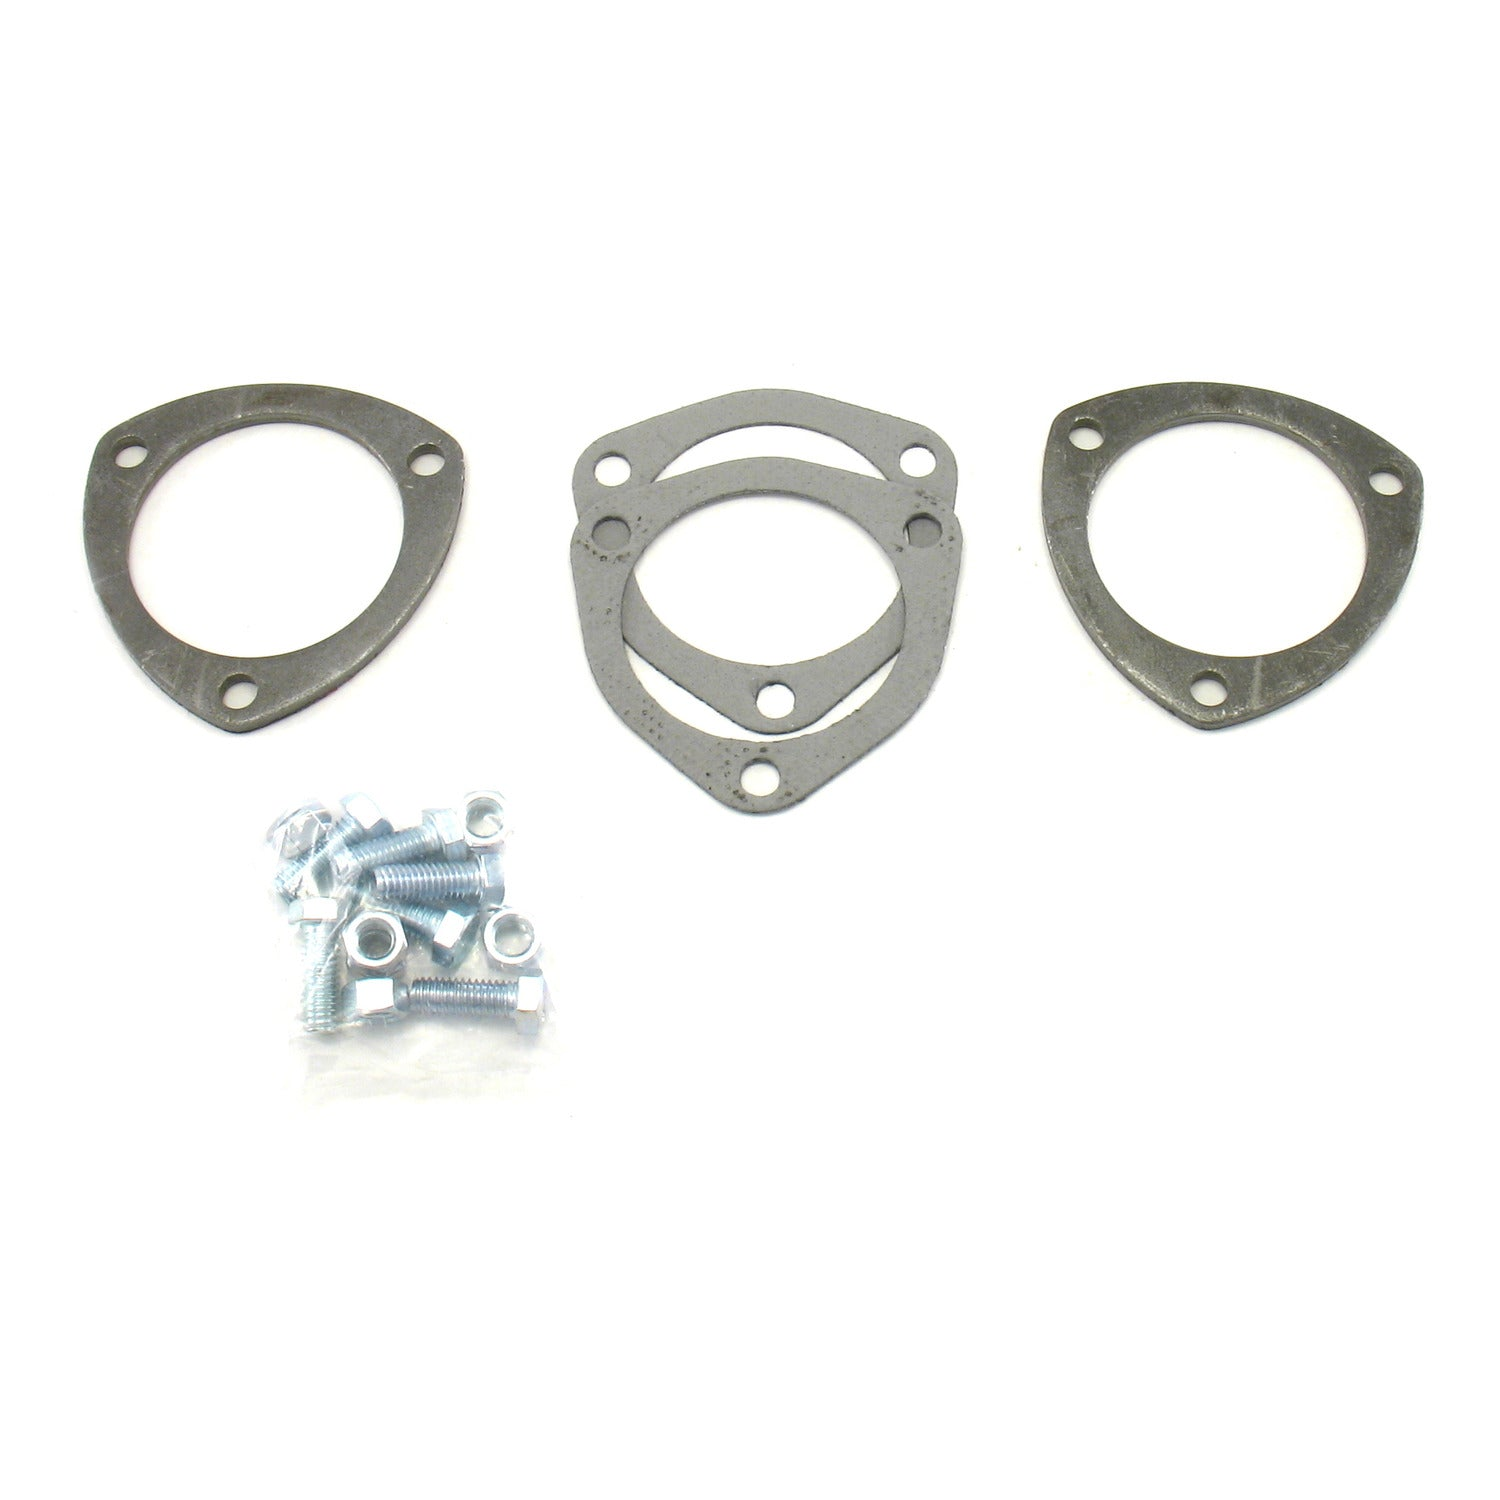 "Patriot Exhaust H7260 3-bolt 3"" diameter Collector Flange Kits"